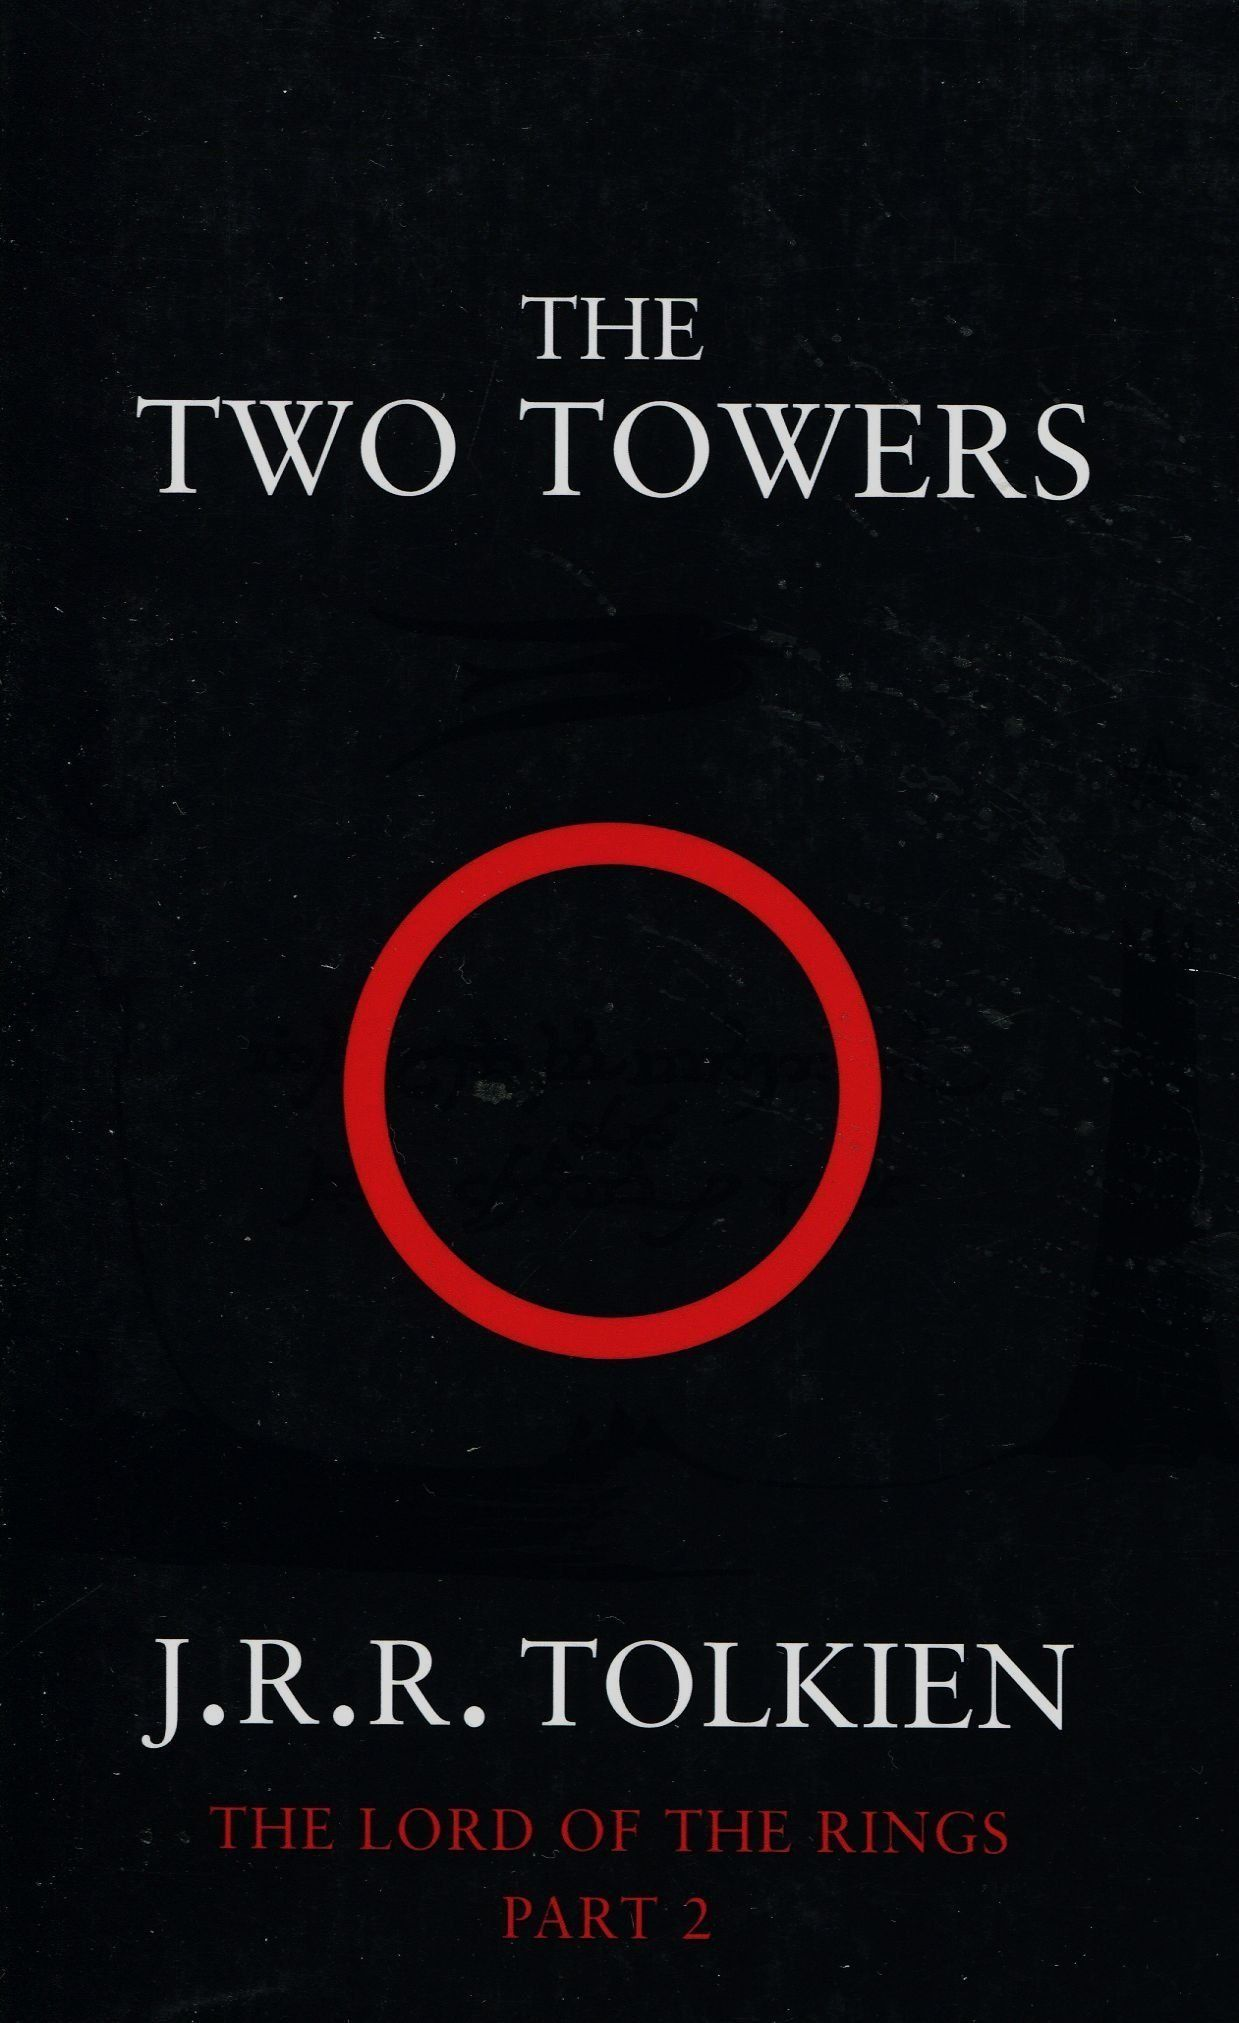 THE TWO TOWERS: TWO TOWERS VOL 2